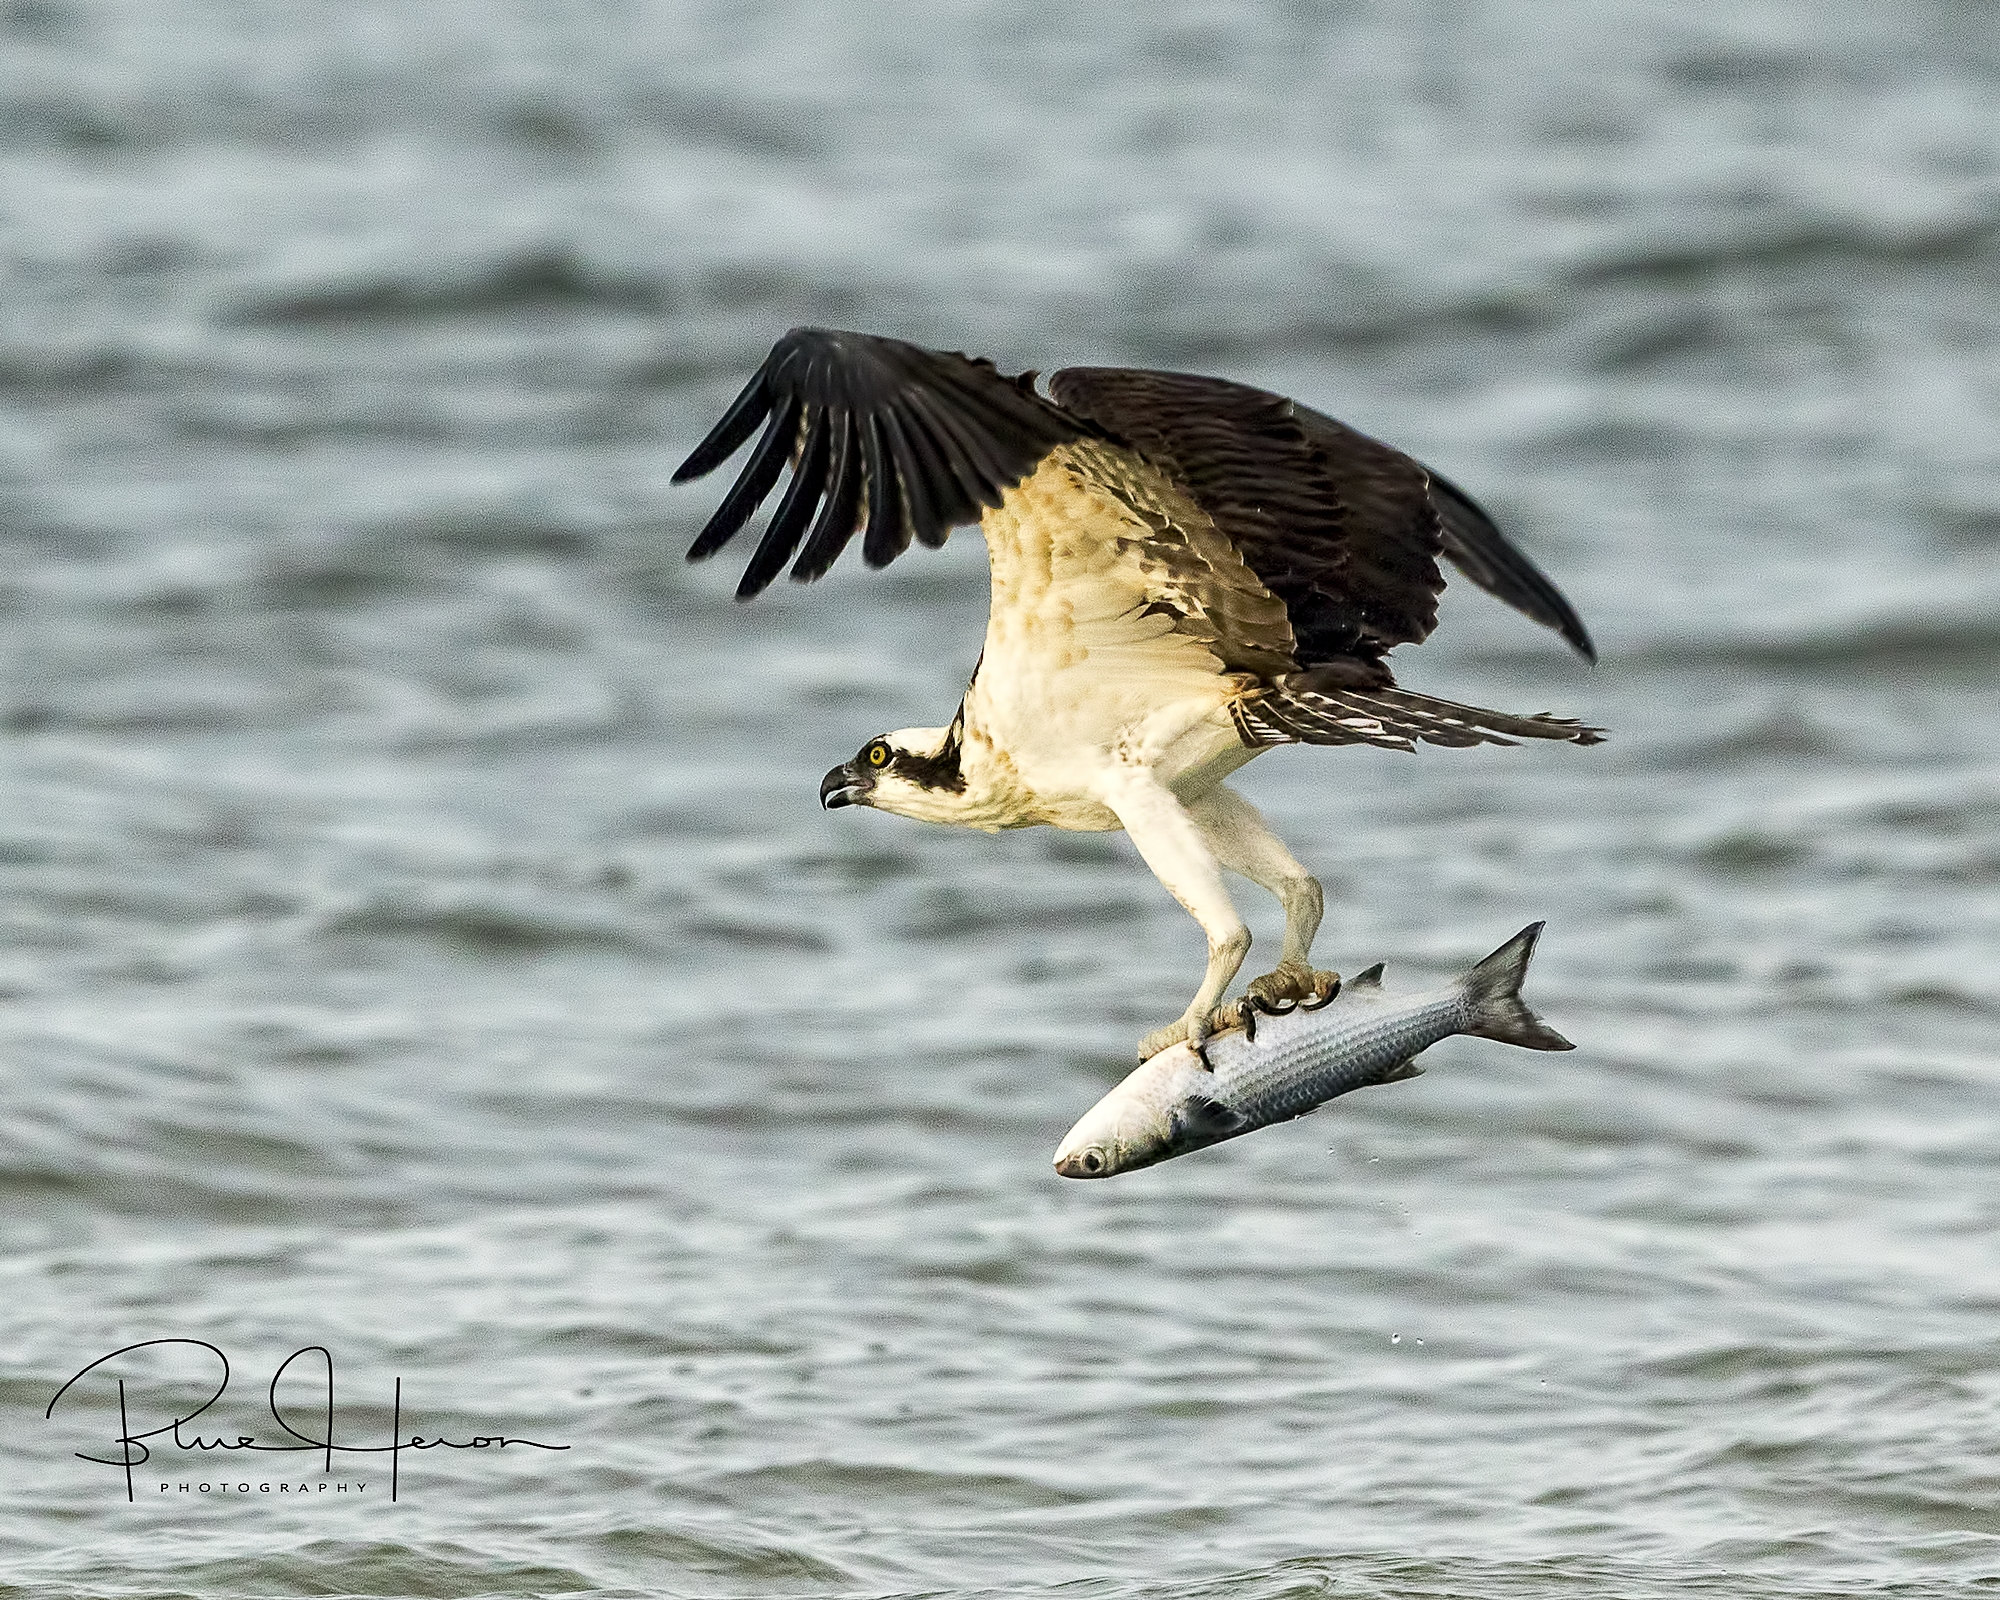 Raptors such as this Osprey feed on the ebb and flow of tides when the fish are schooling into channels.